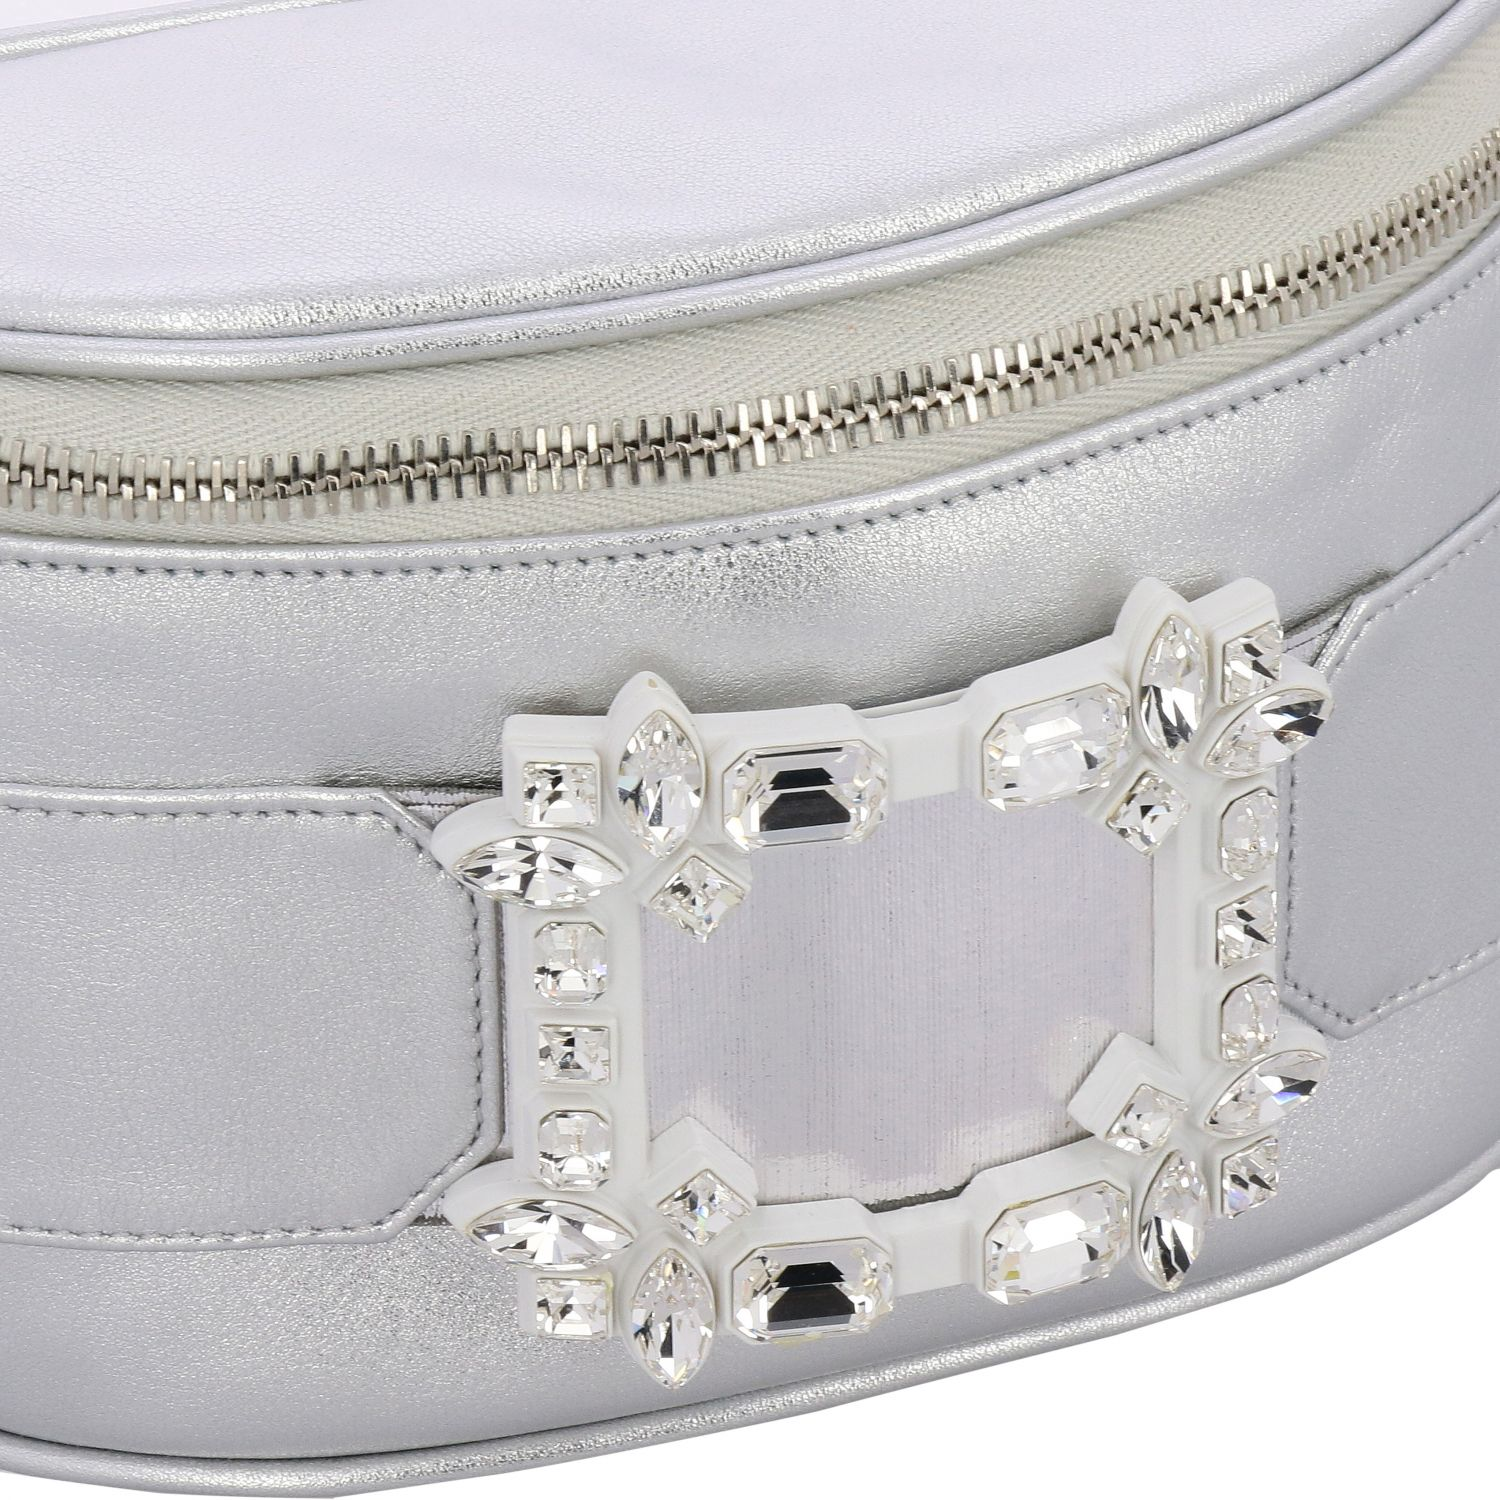 Shoulder bag women Roger Vivier silver 4